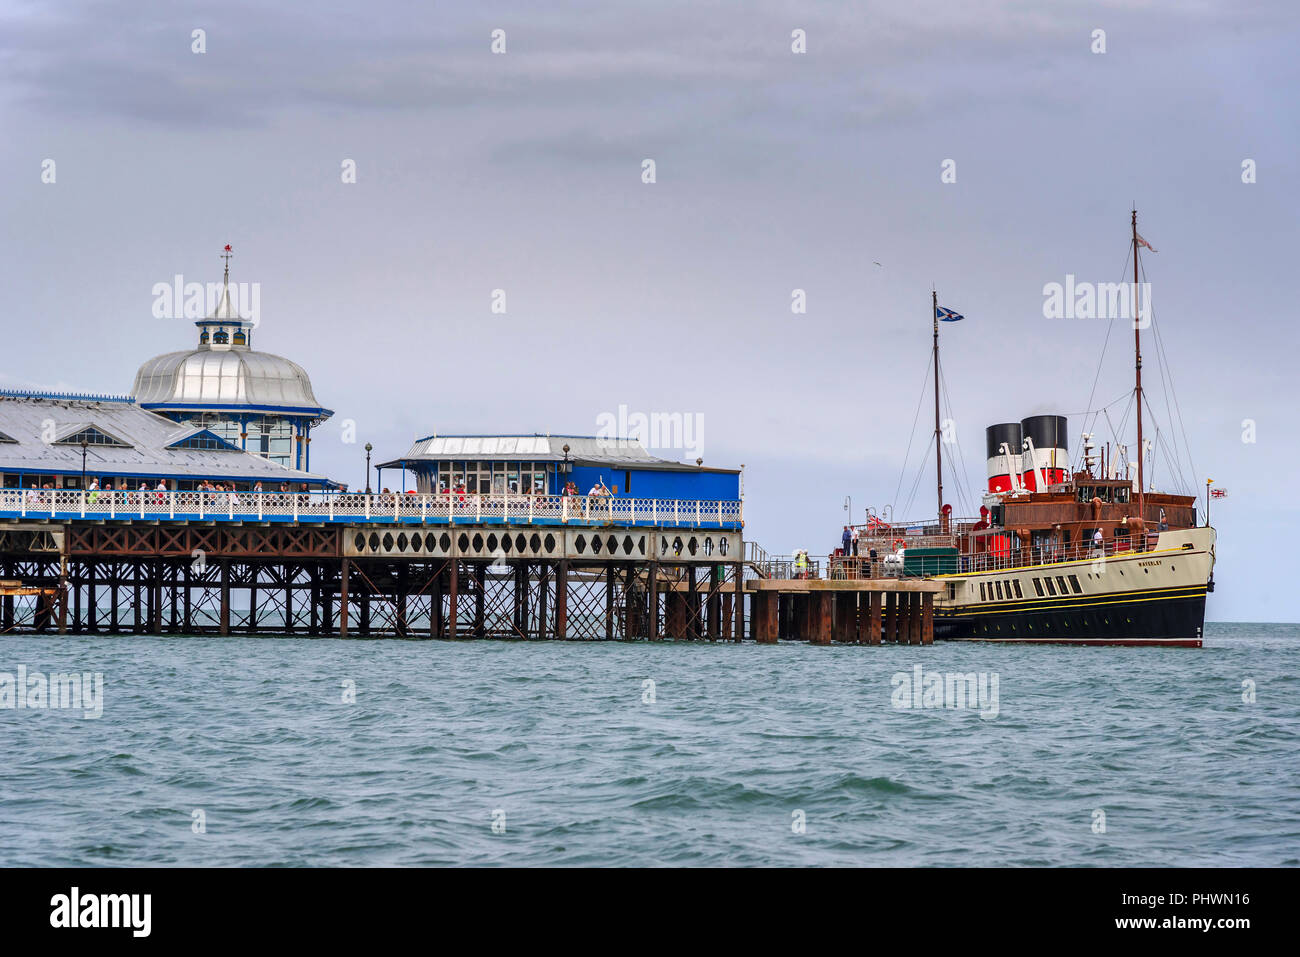 llandudno North Wales. Worlds last seagoing paddle steamer The Waverley. Berthed at the Victorian Pier. - Stock Image